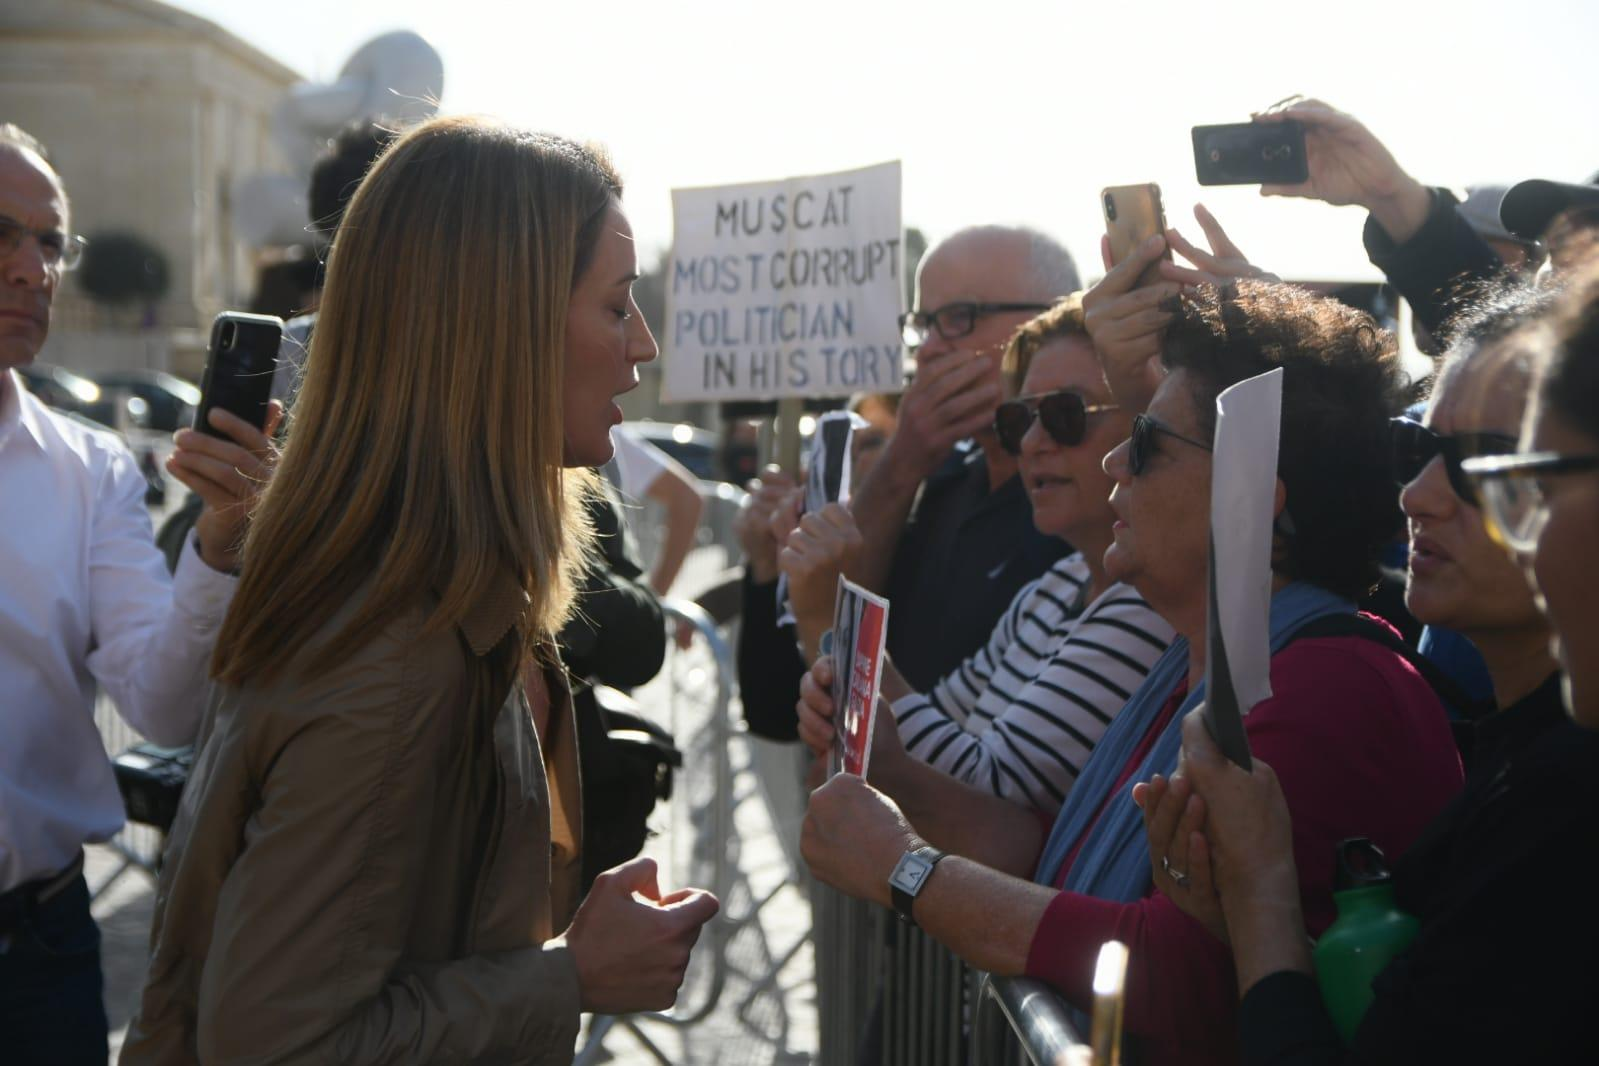 Roberta Metsola speaking to protesters outside Castille on Tuesday morning. Photo: Jonathan Borg